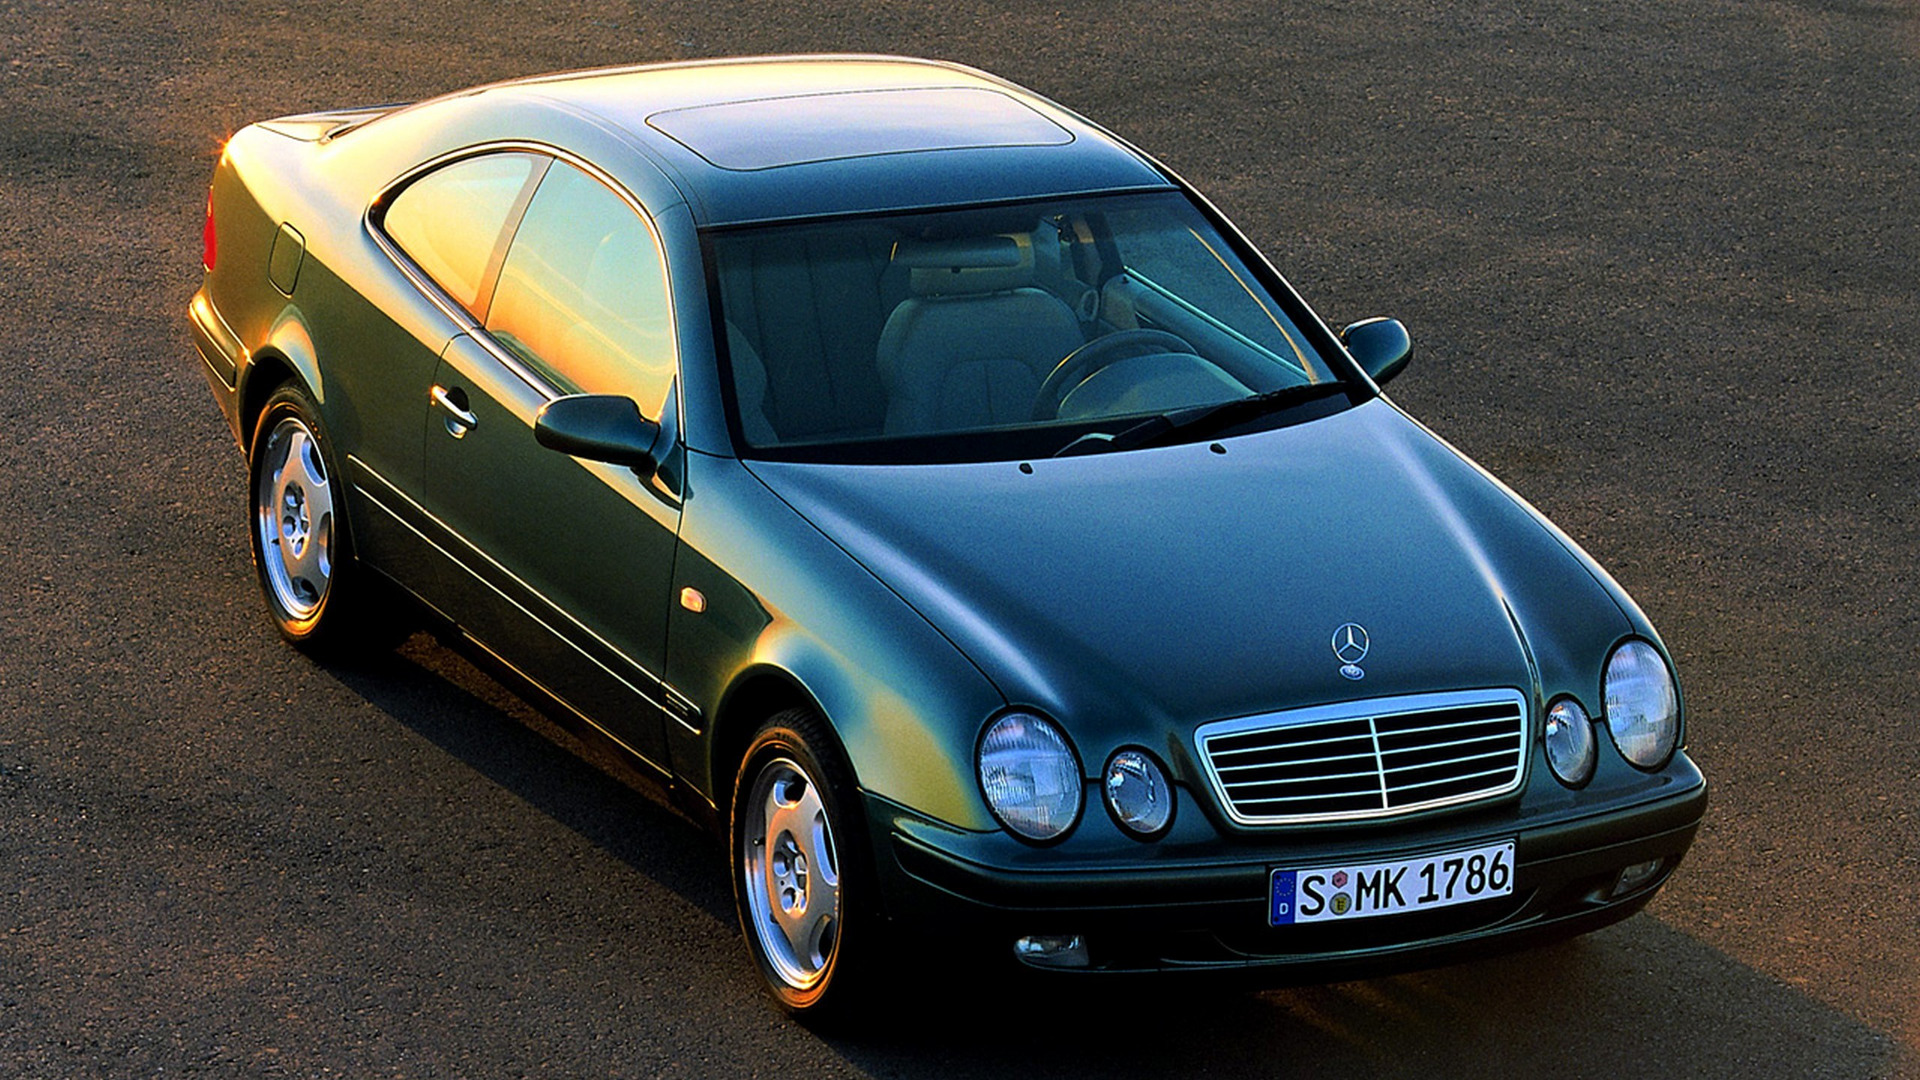 Worst Sports Cars: Mercedes CLK (first generation)